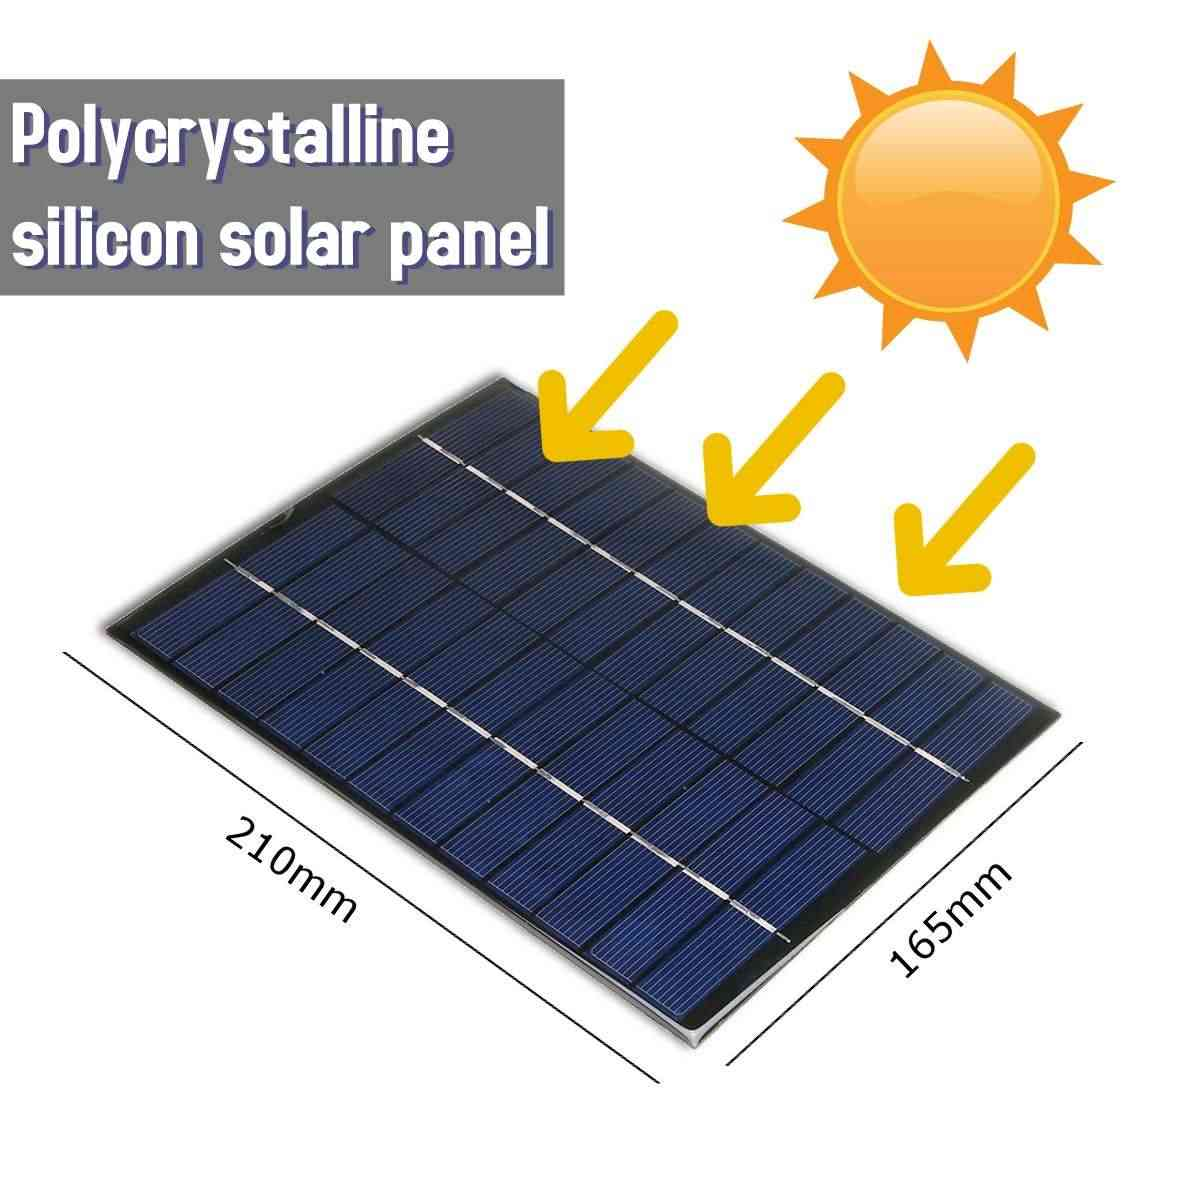 LEORY Solar Panel 12V 5.2W  Solar Charger 5V Phone Battery Charger 12V Mini DIY Epoxy Polycrystalline Cells For Cellphone